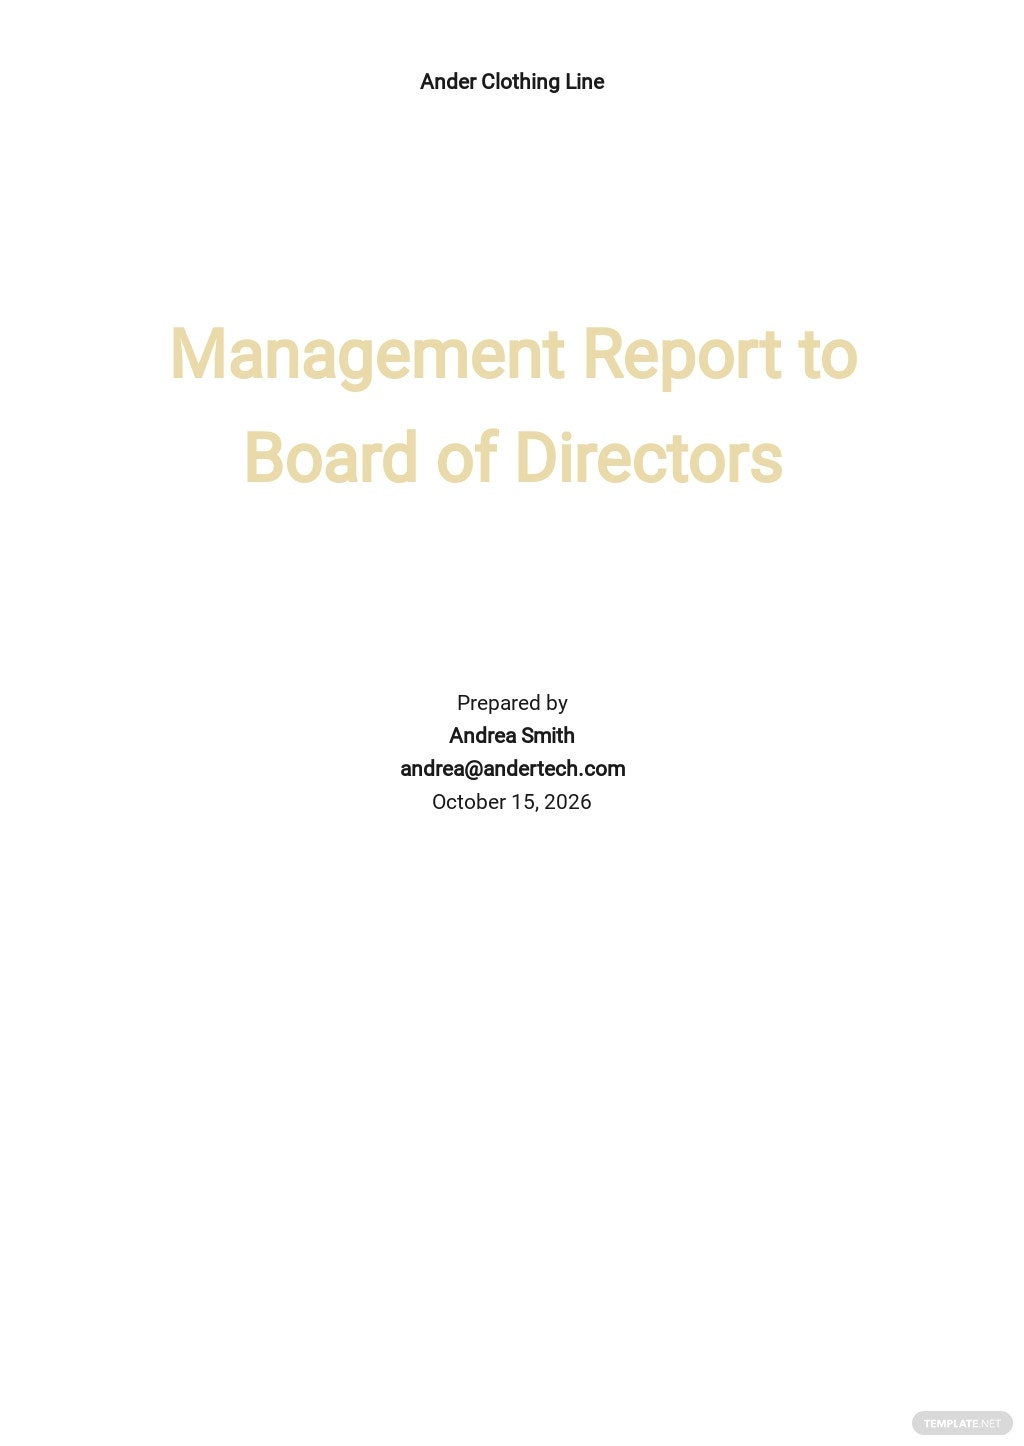 Management Report To Board of Directors Template.jpe